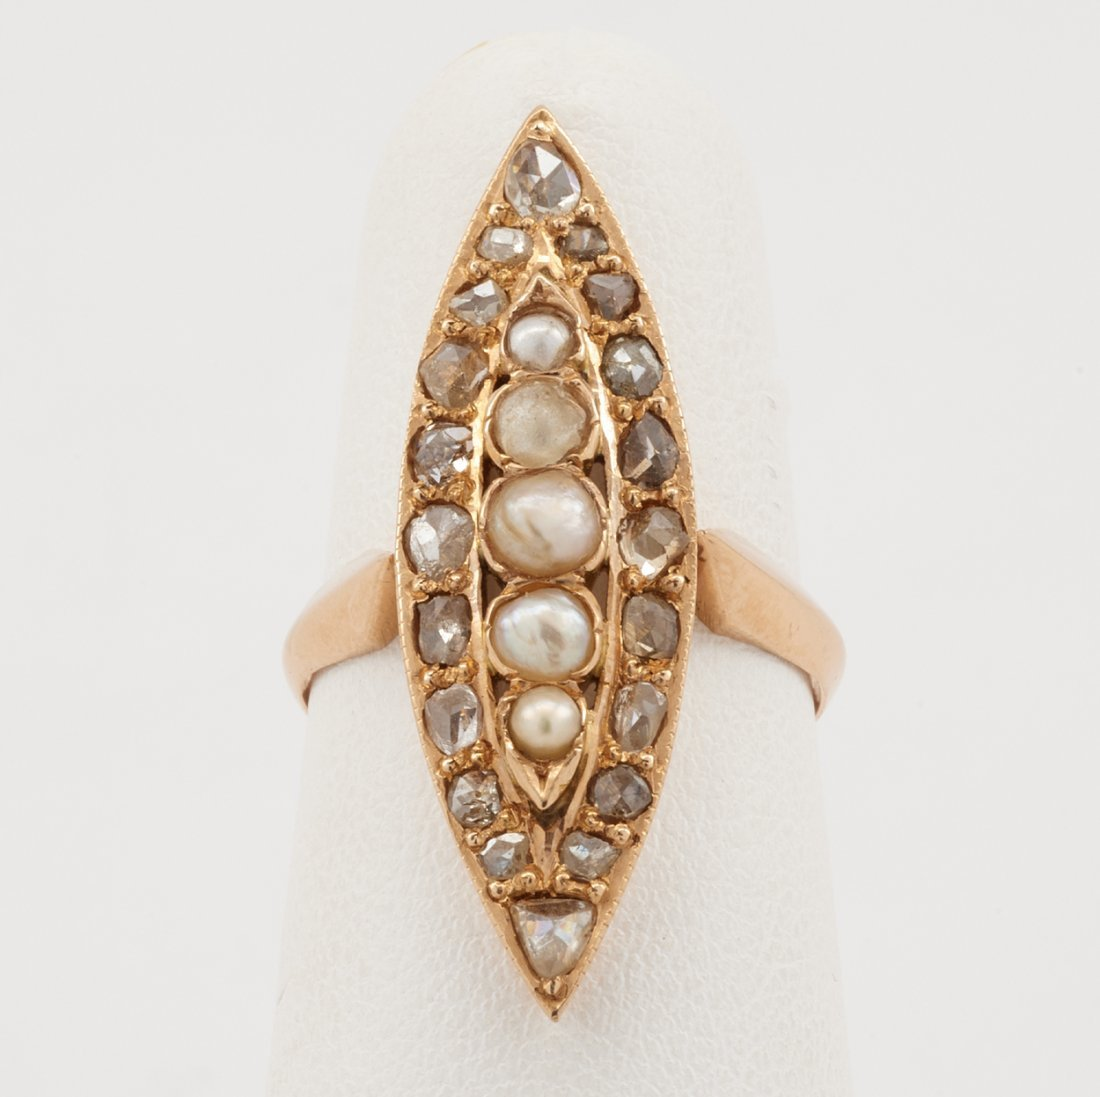 18k Rose gold, pearl & diamond navette ring - 3